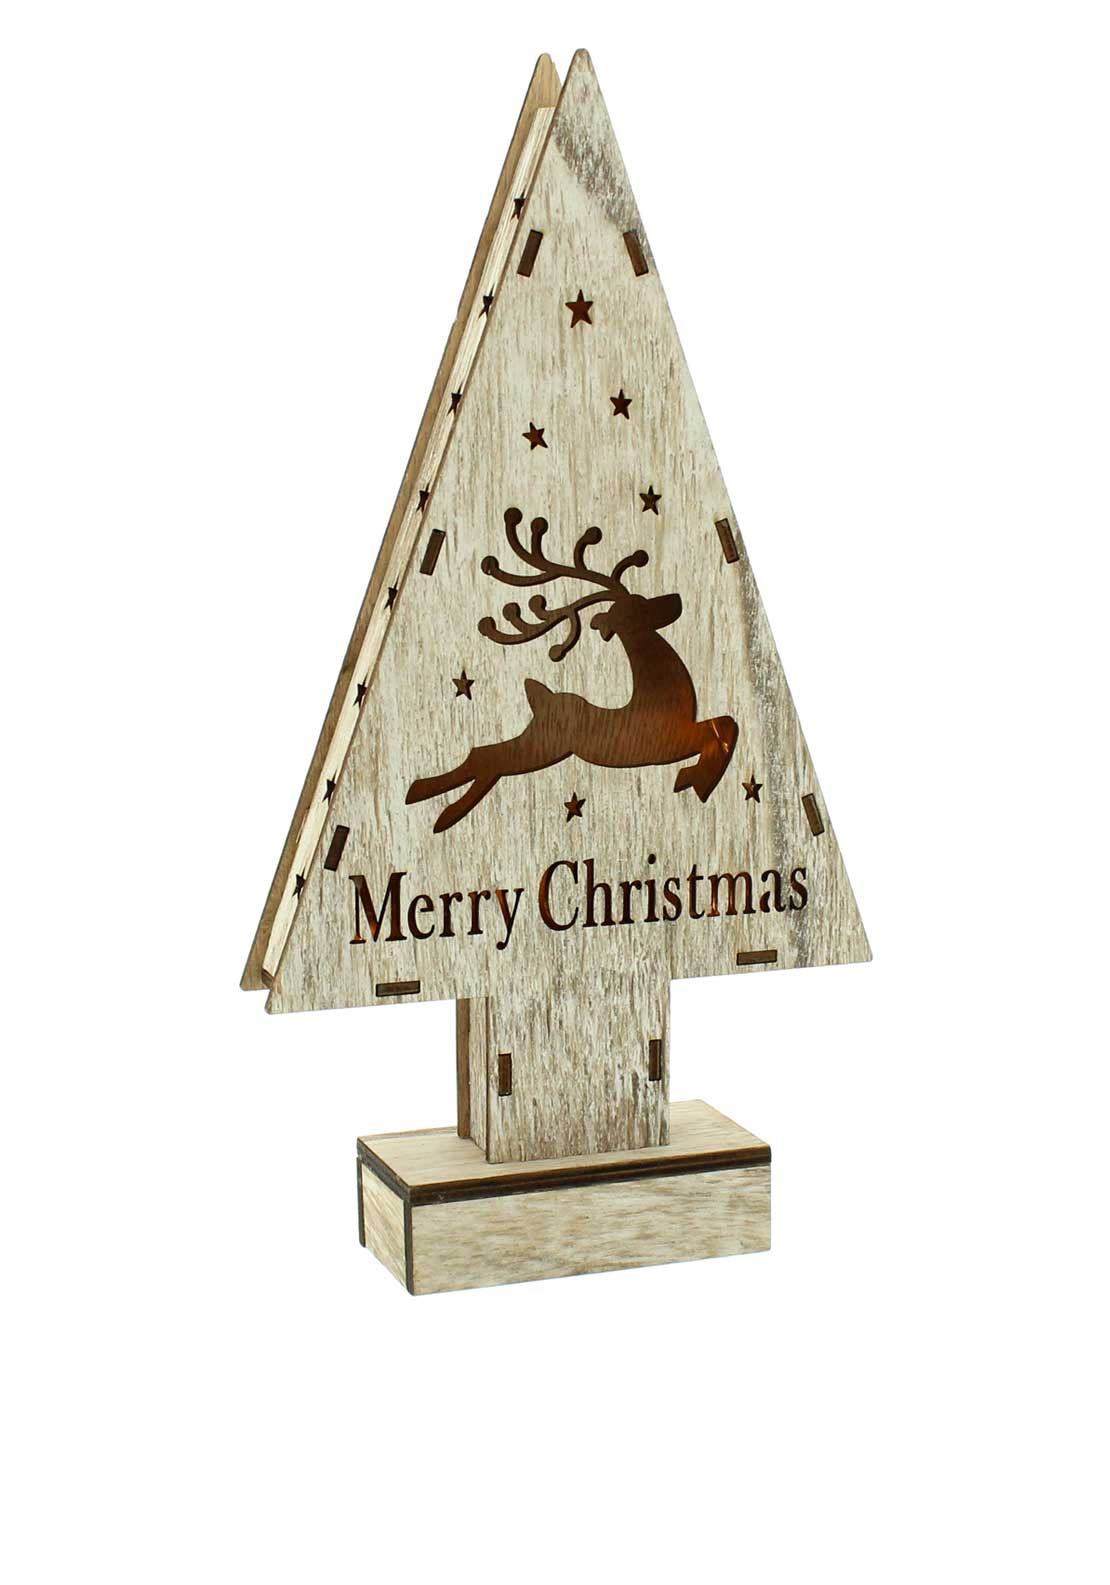 Festive Lit Wooden Star Reindeer Decoration